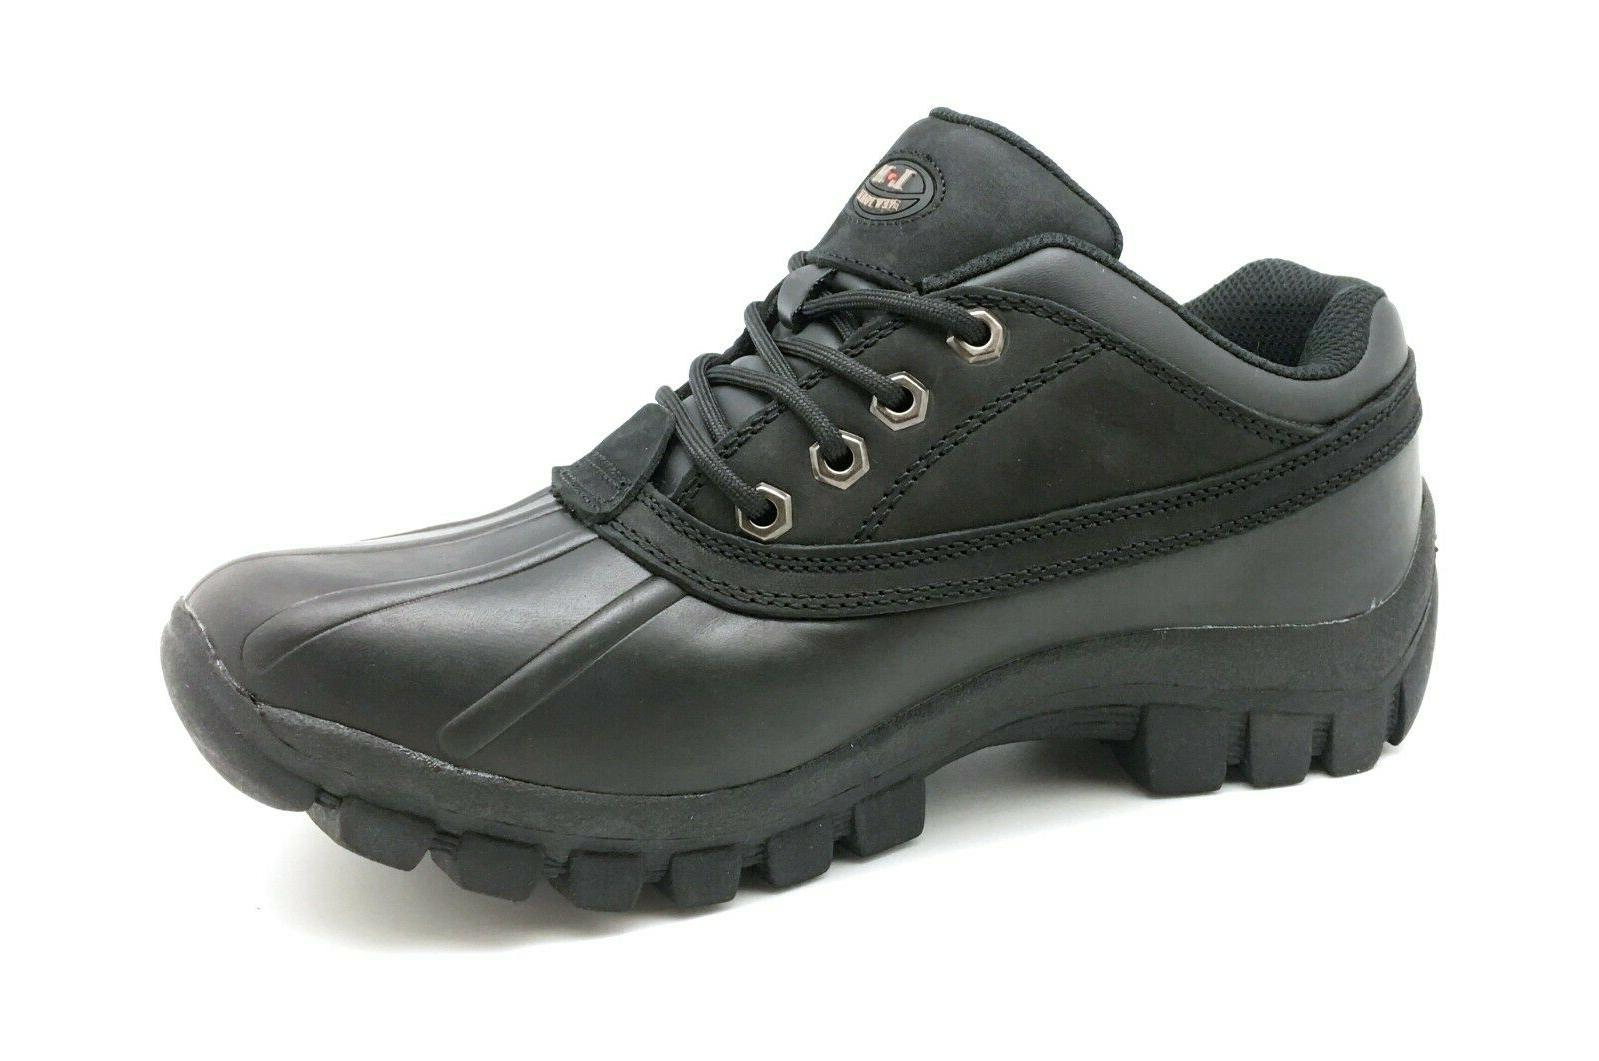 LM Boots Shoes Work Genuine Leather Waterproof 2017